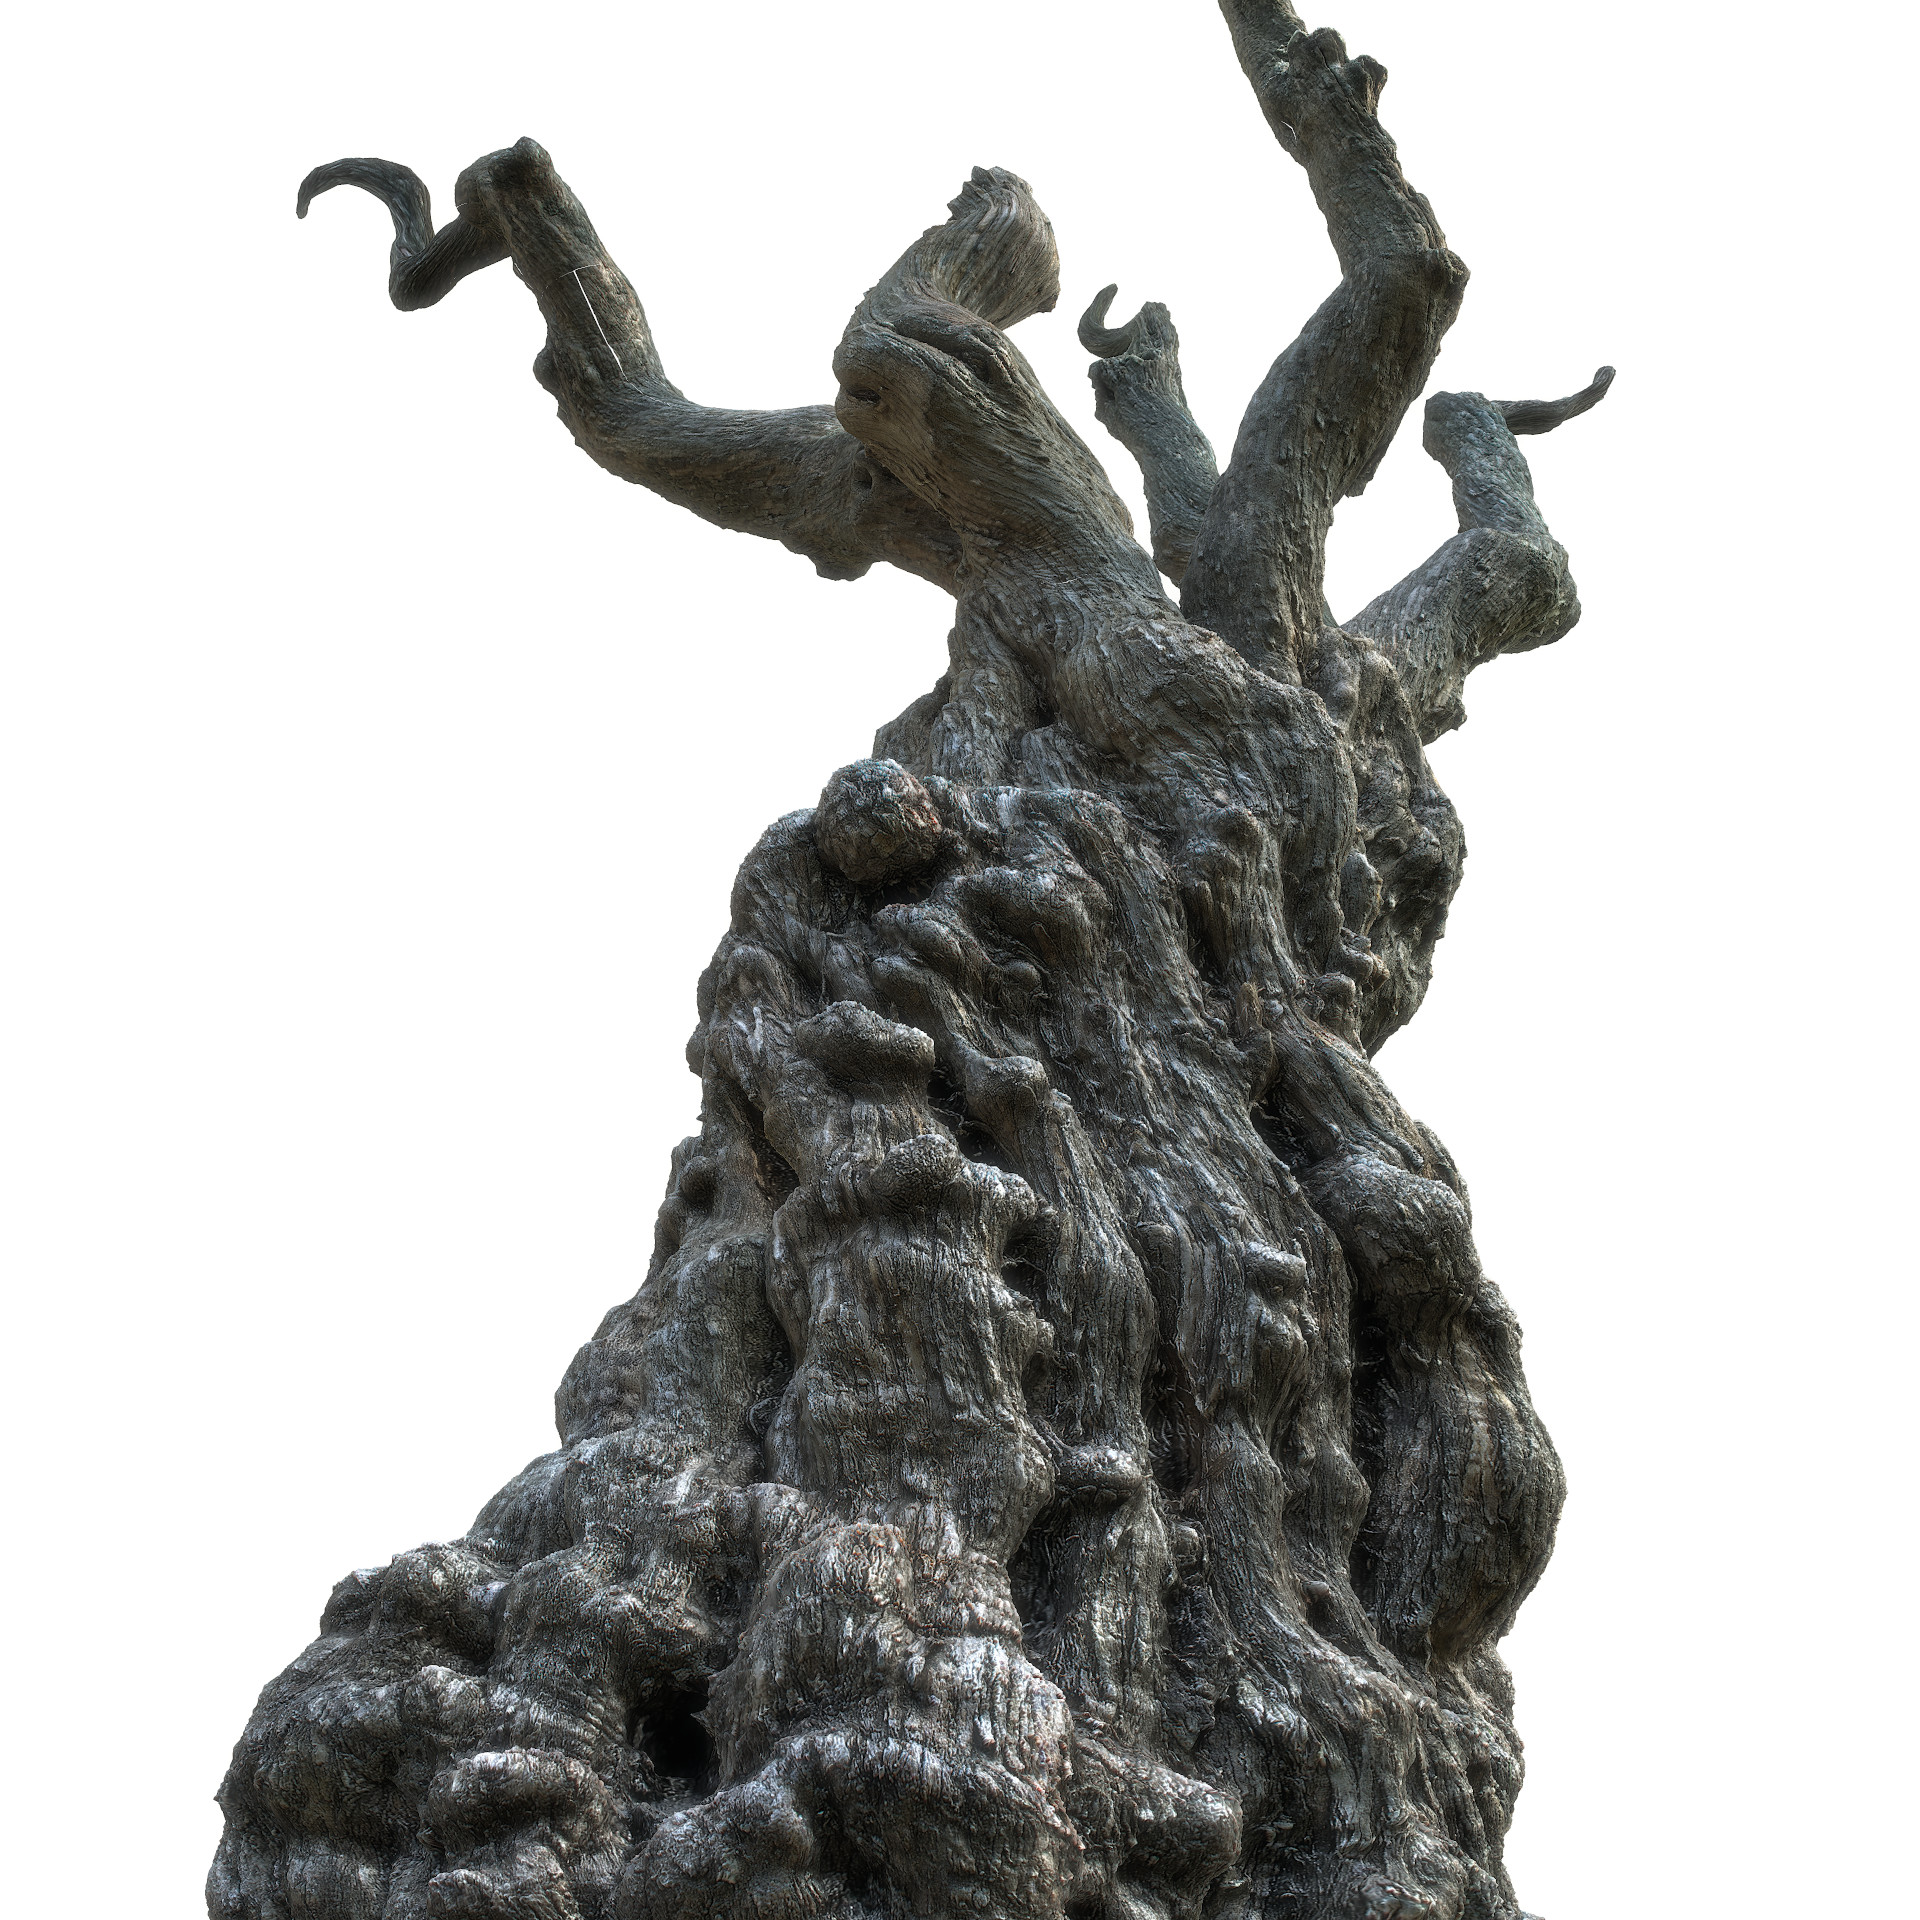 ArtStation - Game Ready Tree Trunk Real-time 3D Model, · K